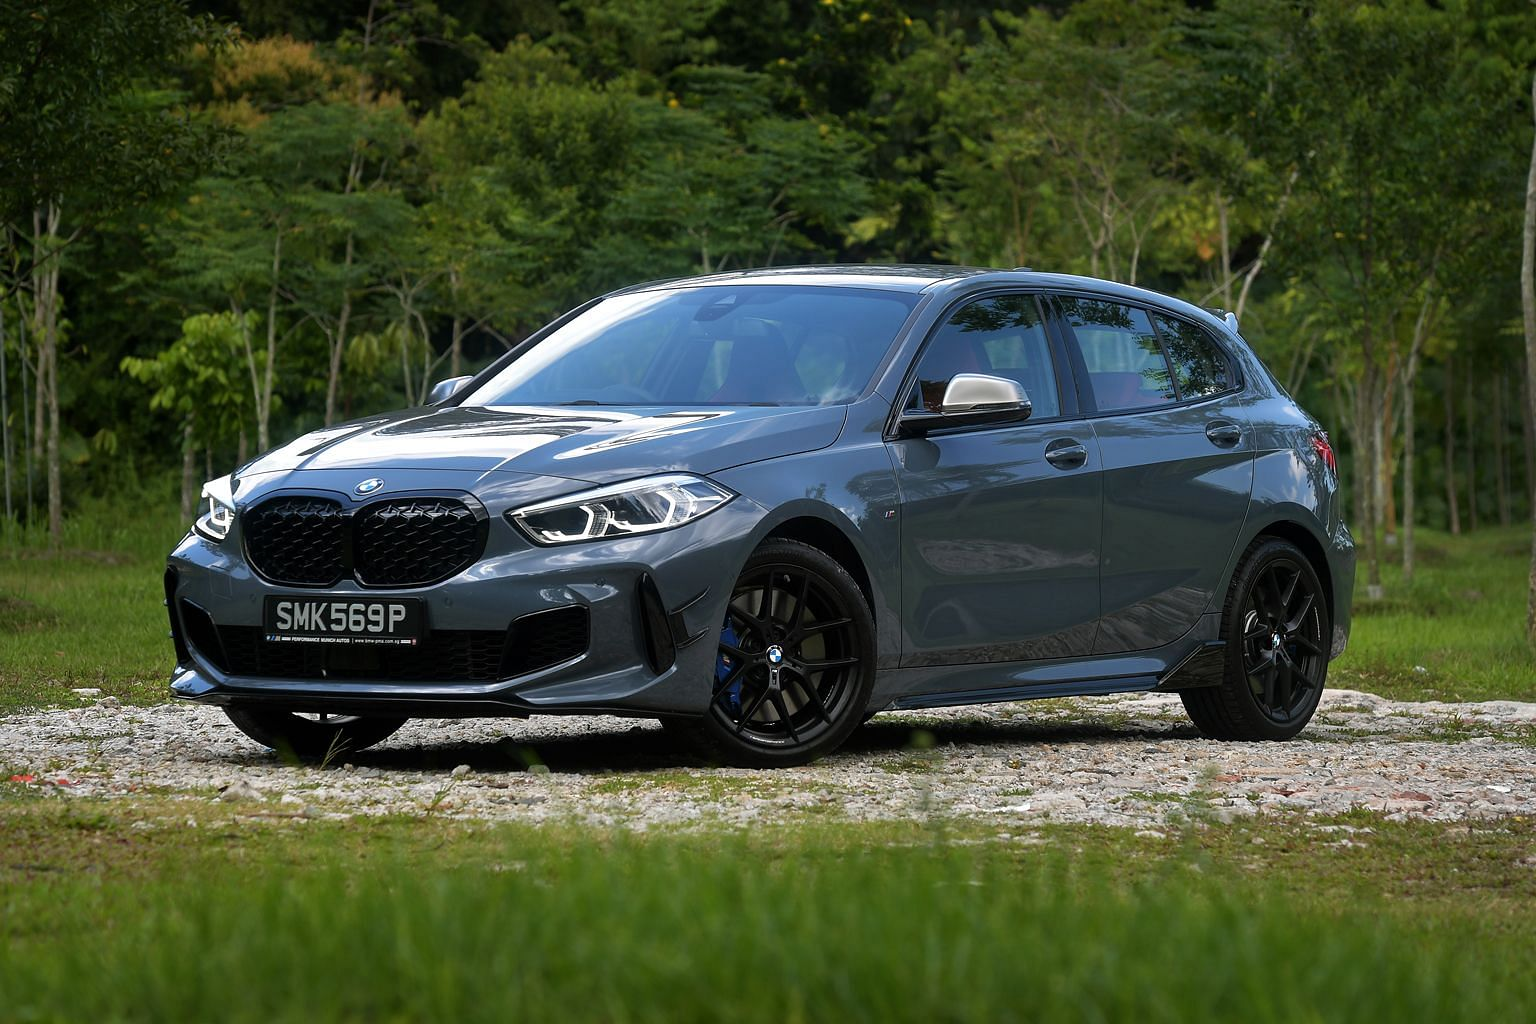 The BMW M135i is easy to handle, with good visibility, a compact tidy footprint and breezy access to its power reserve.